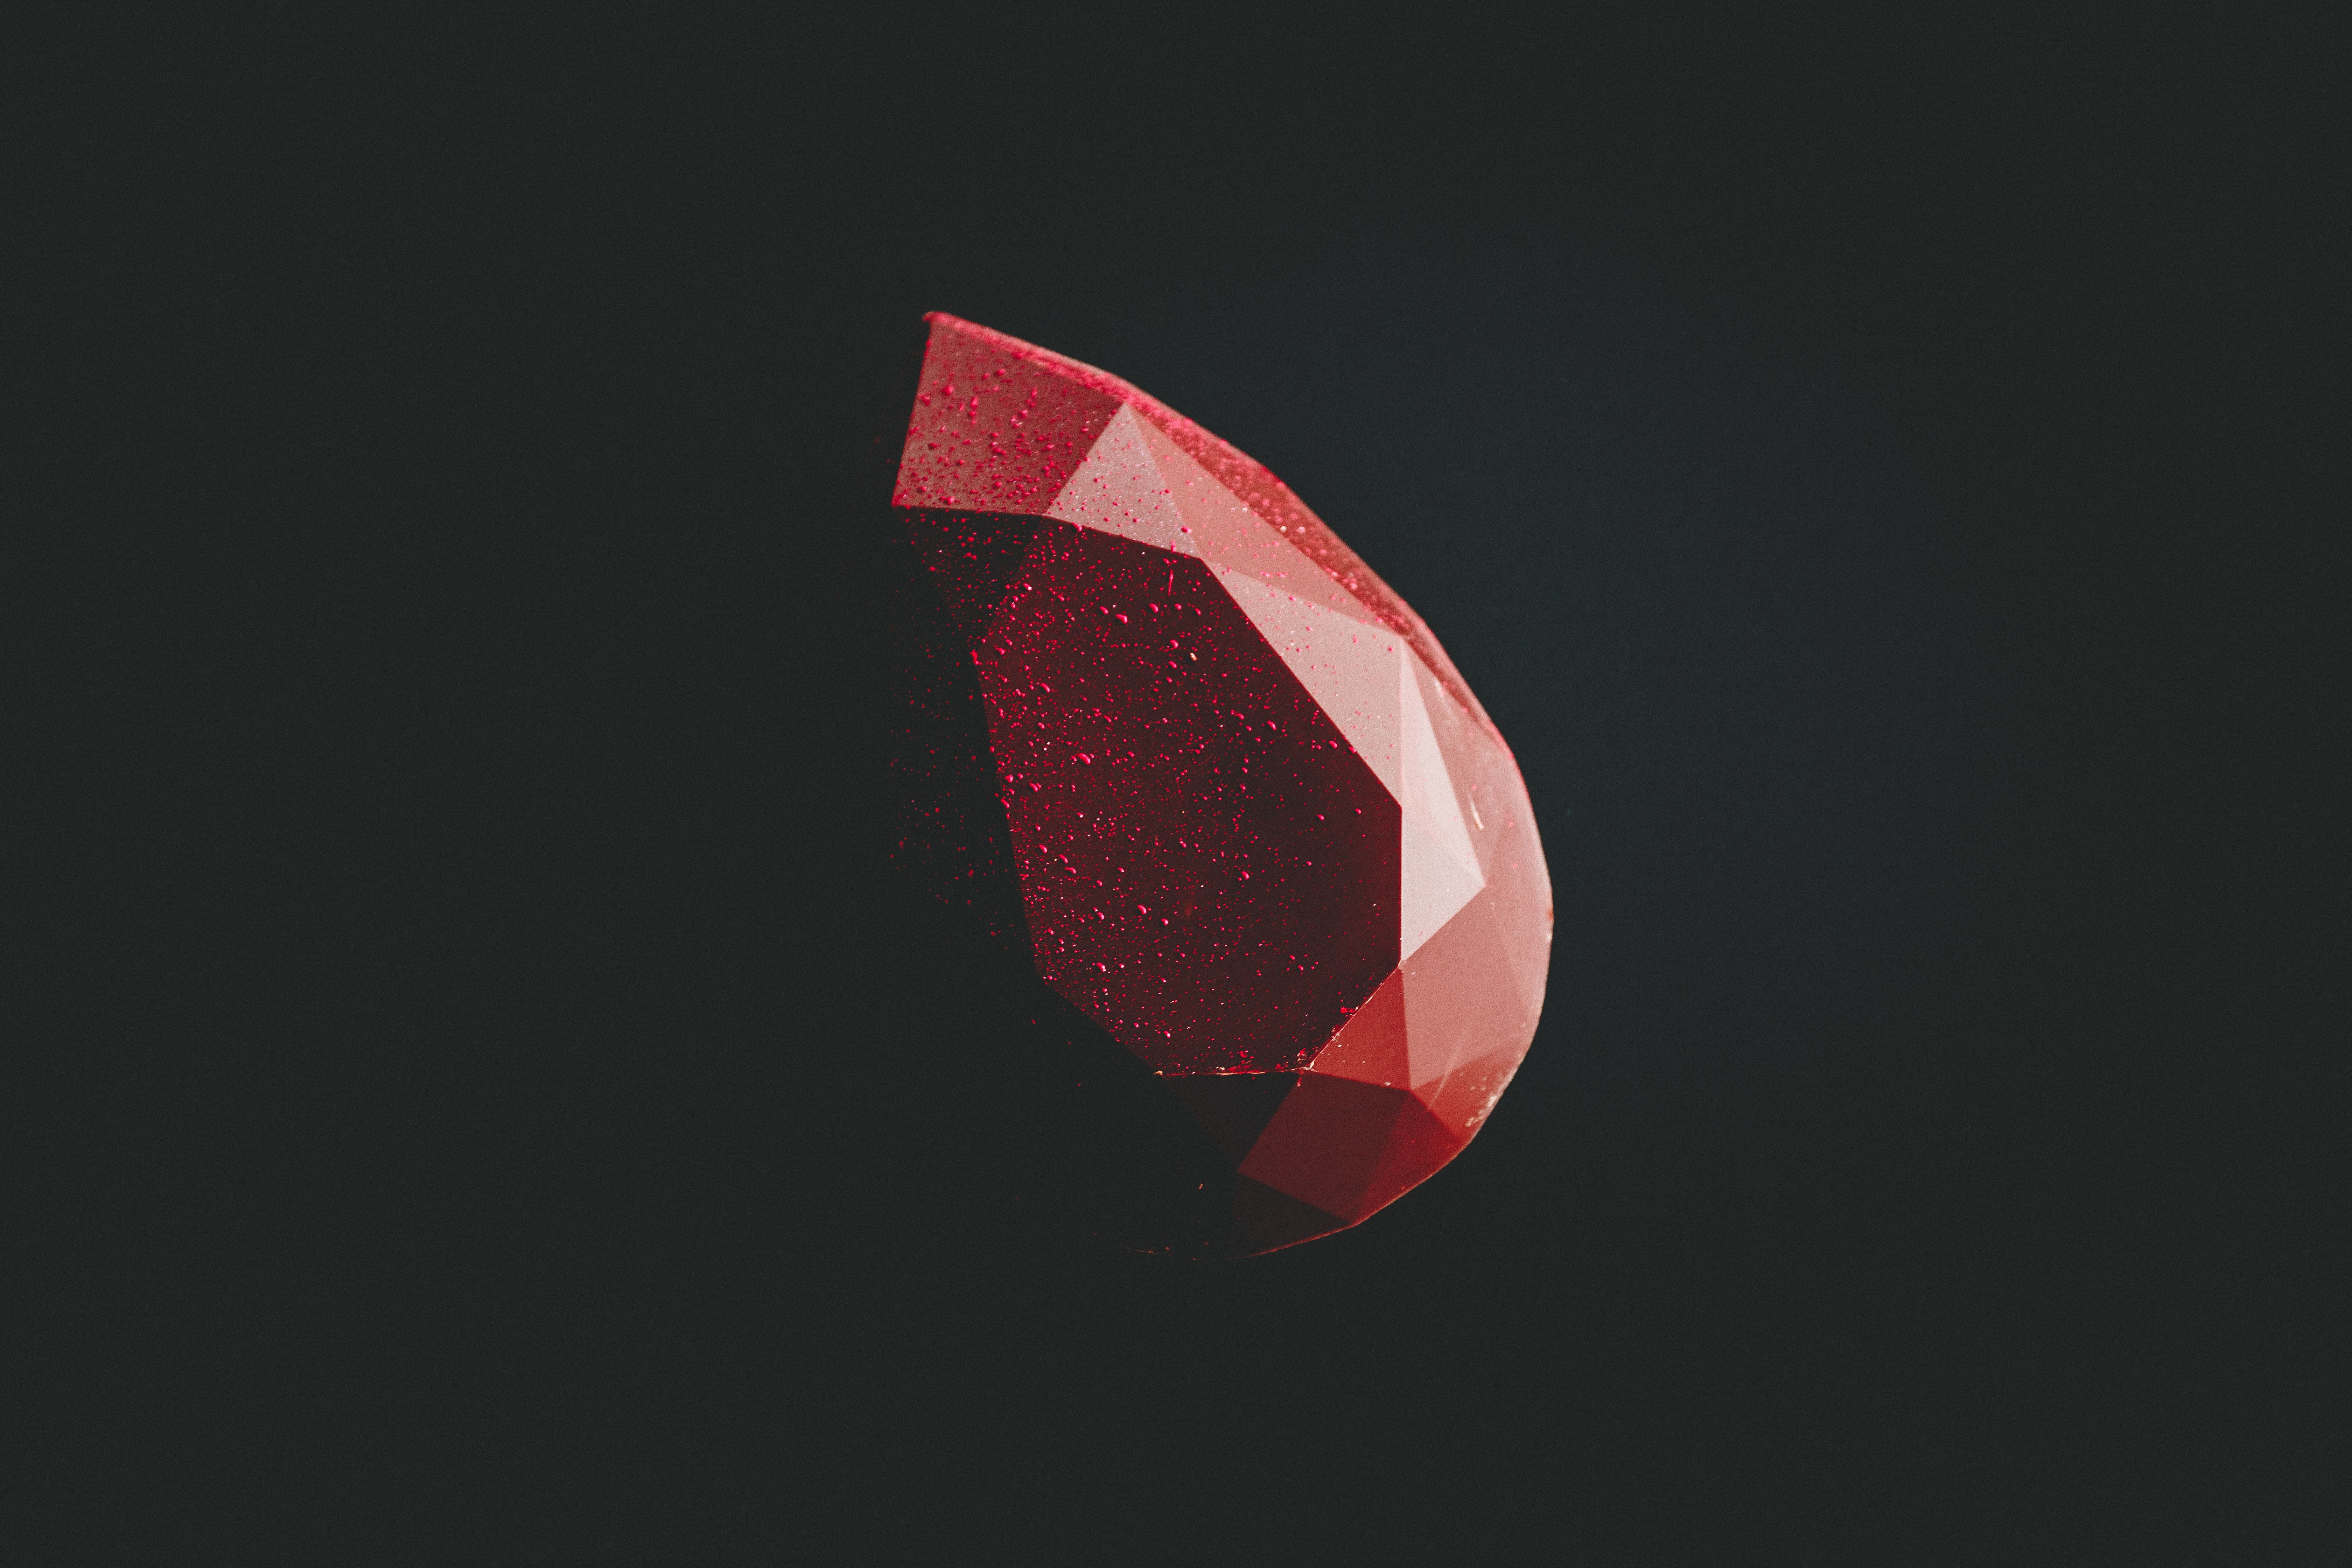 Black And Red Minimalist Wallpapers - Wallpaper Cave